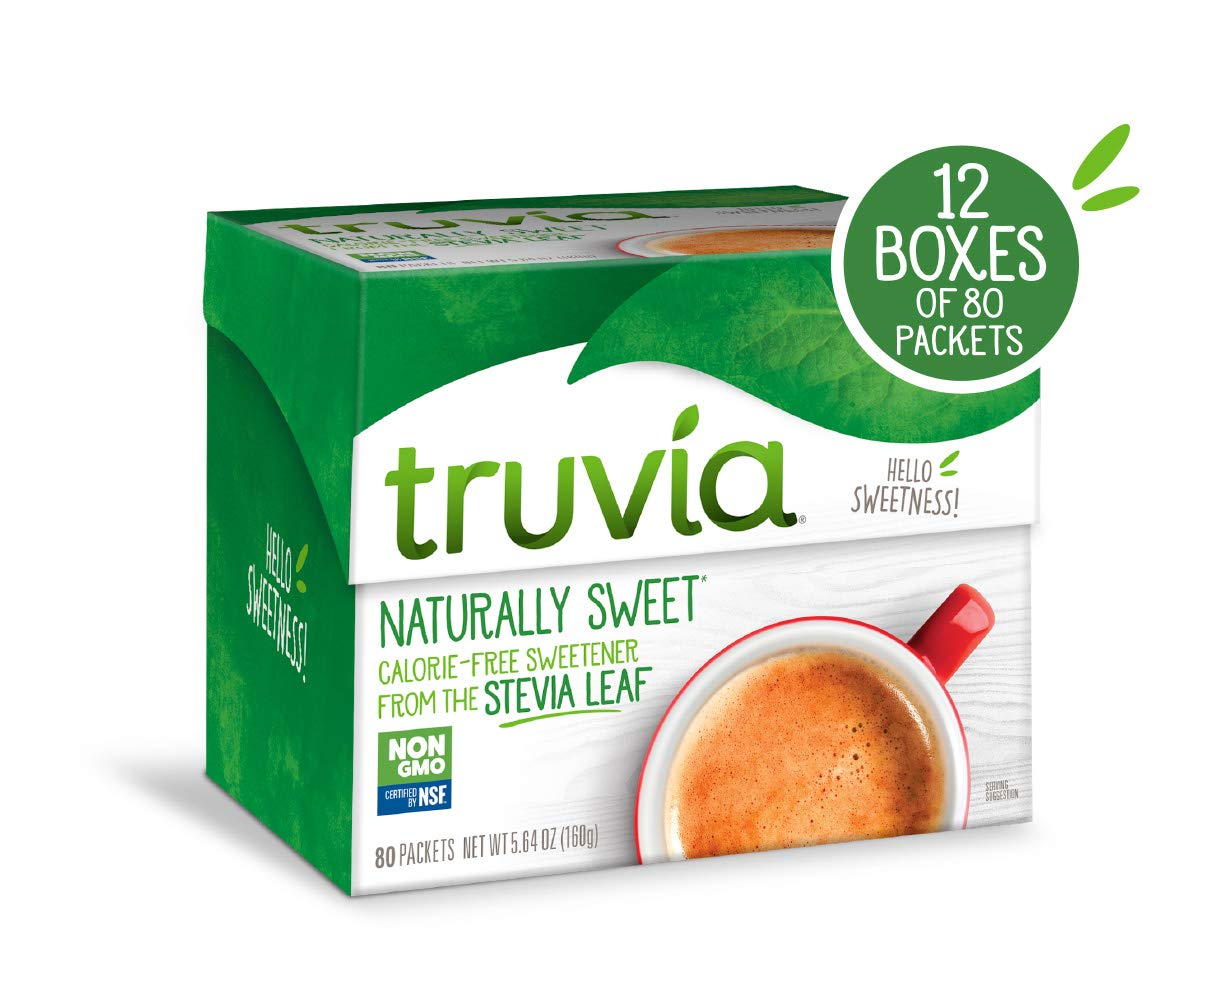 Truvia Natural Stevia Sweetener Packets, 80-Count Carton (Net Wt. 5.64 oz) (Pack of 12) by TRUVÍA